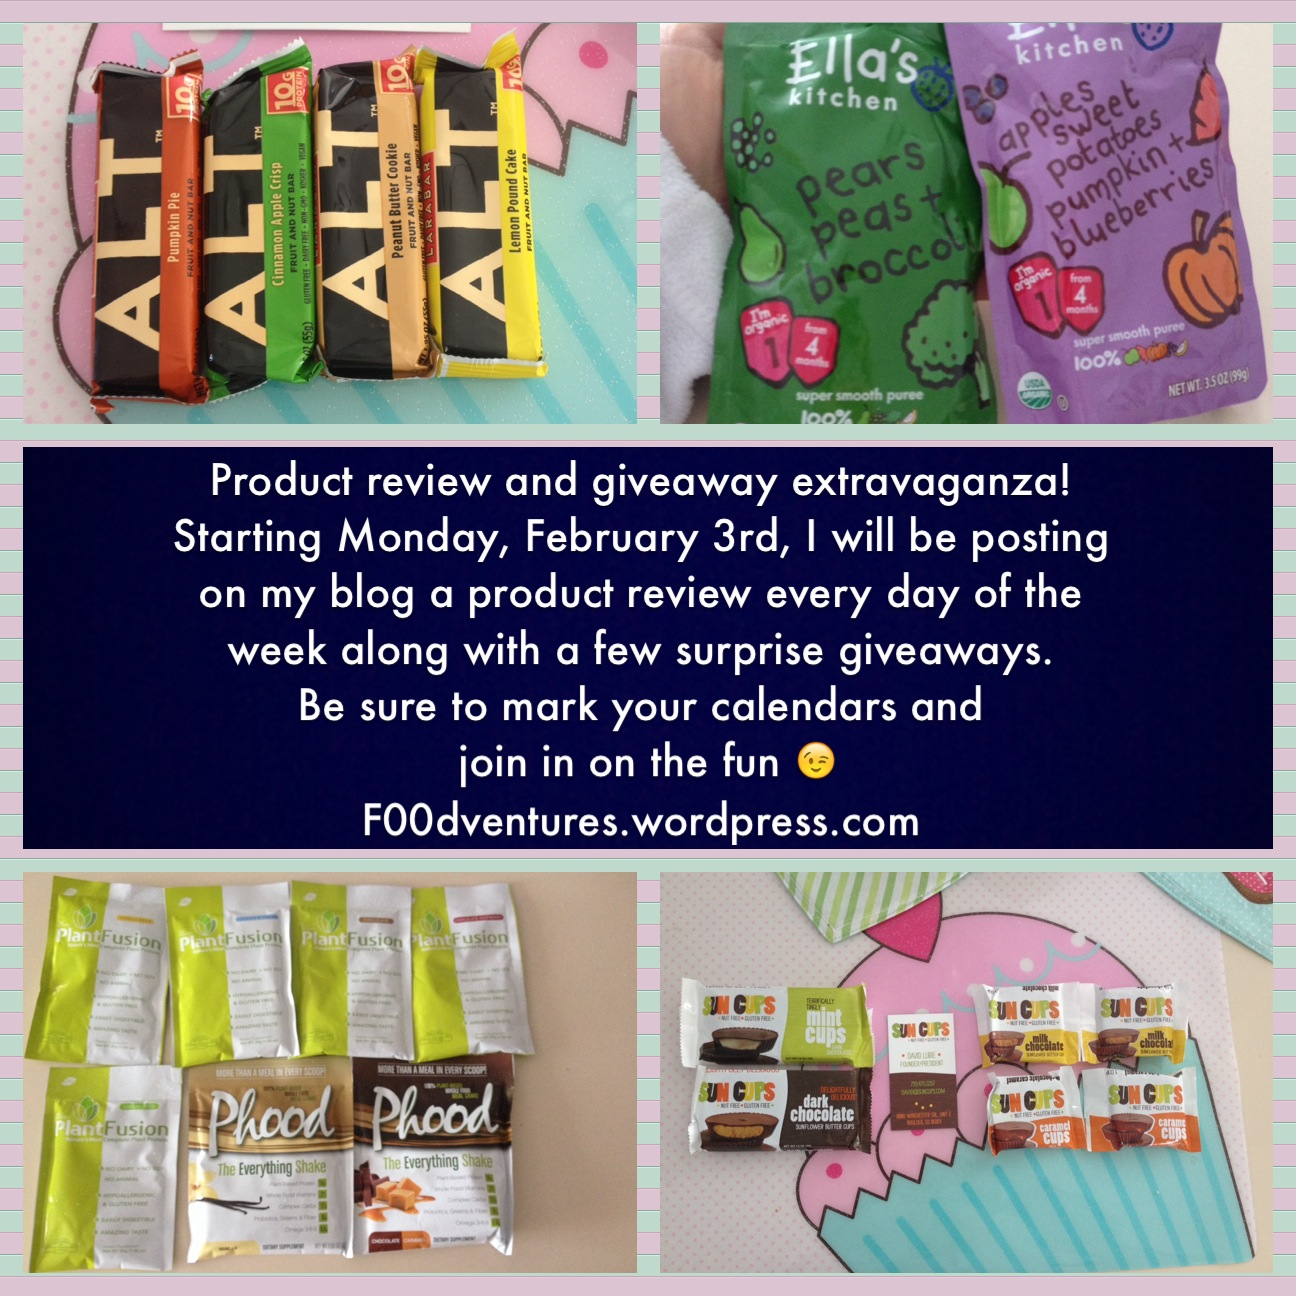 product review and giveaway extravaganza